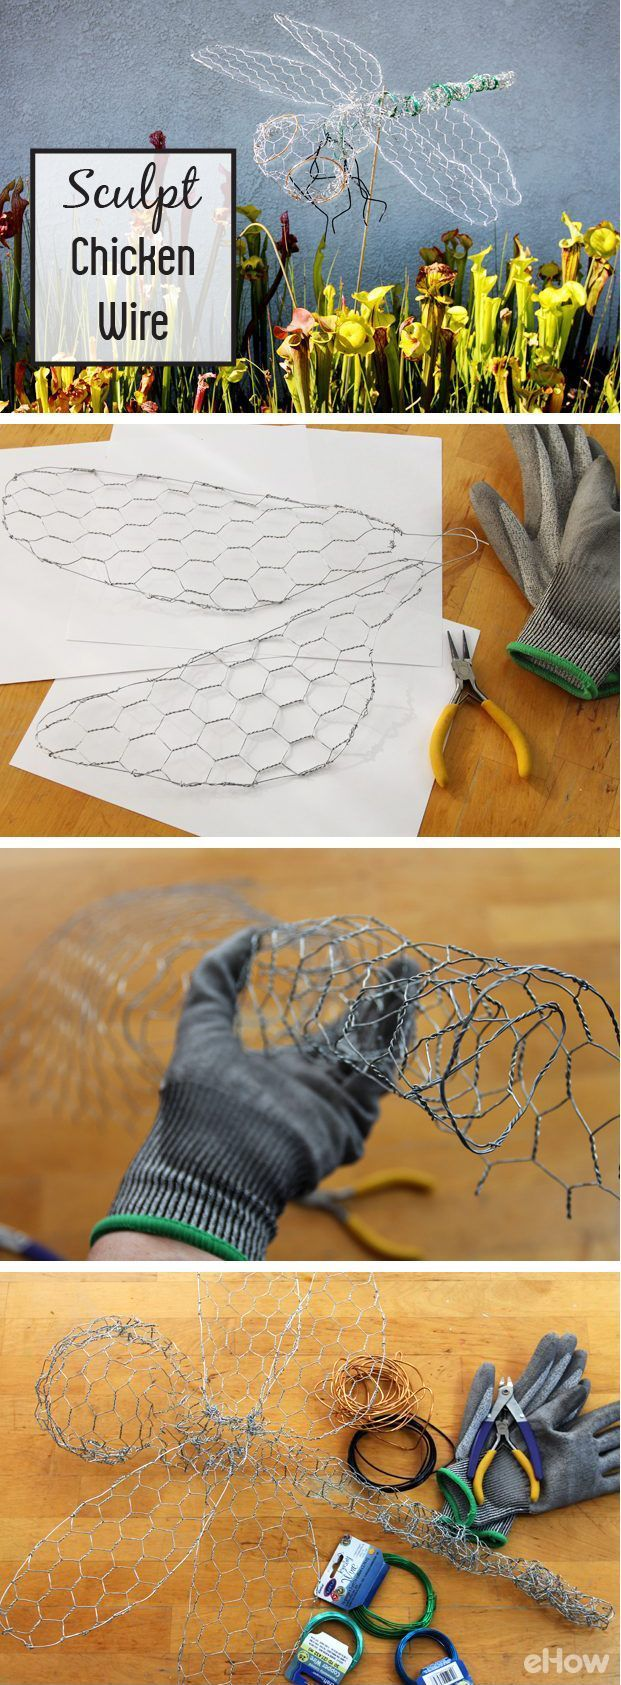 How to Sculpt With Chicken Wire   Hasendraht, Draht und Skulptur